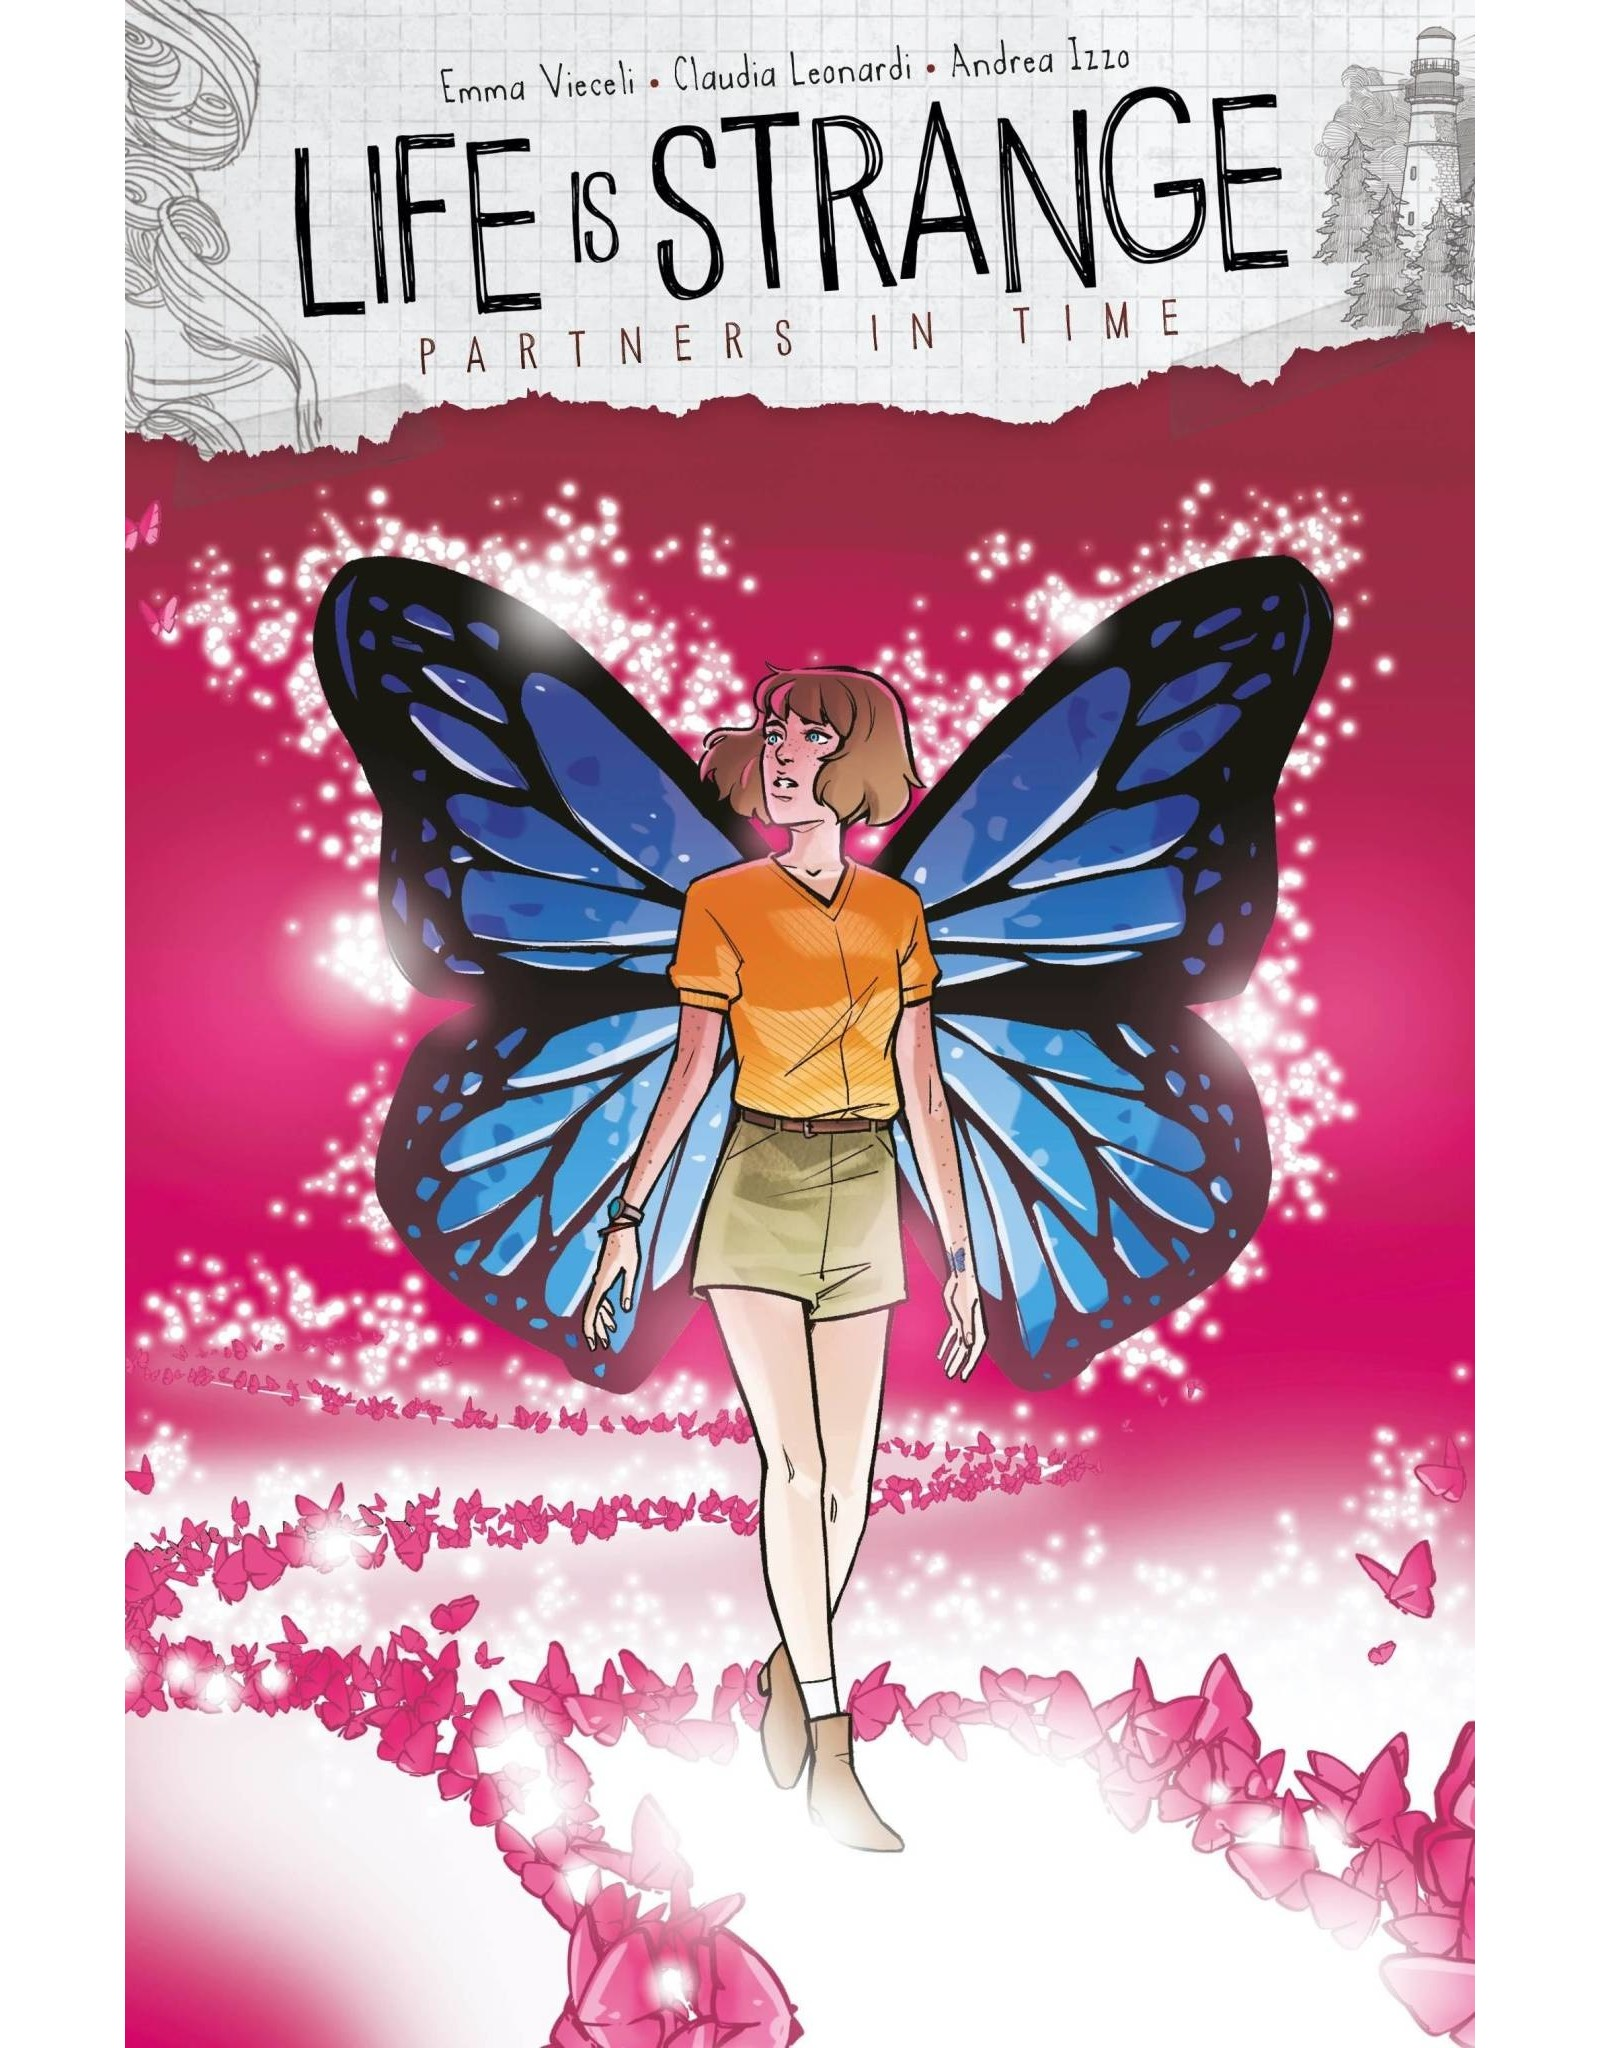 TITAN COMICS LIFE IS STRANGE PARTNERS IN TIME #1 CVR D LEONARDI (RES) (MR